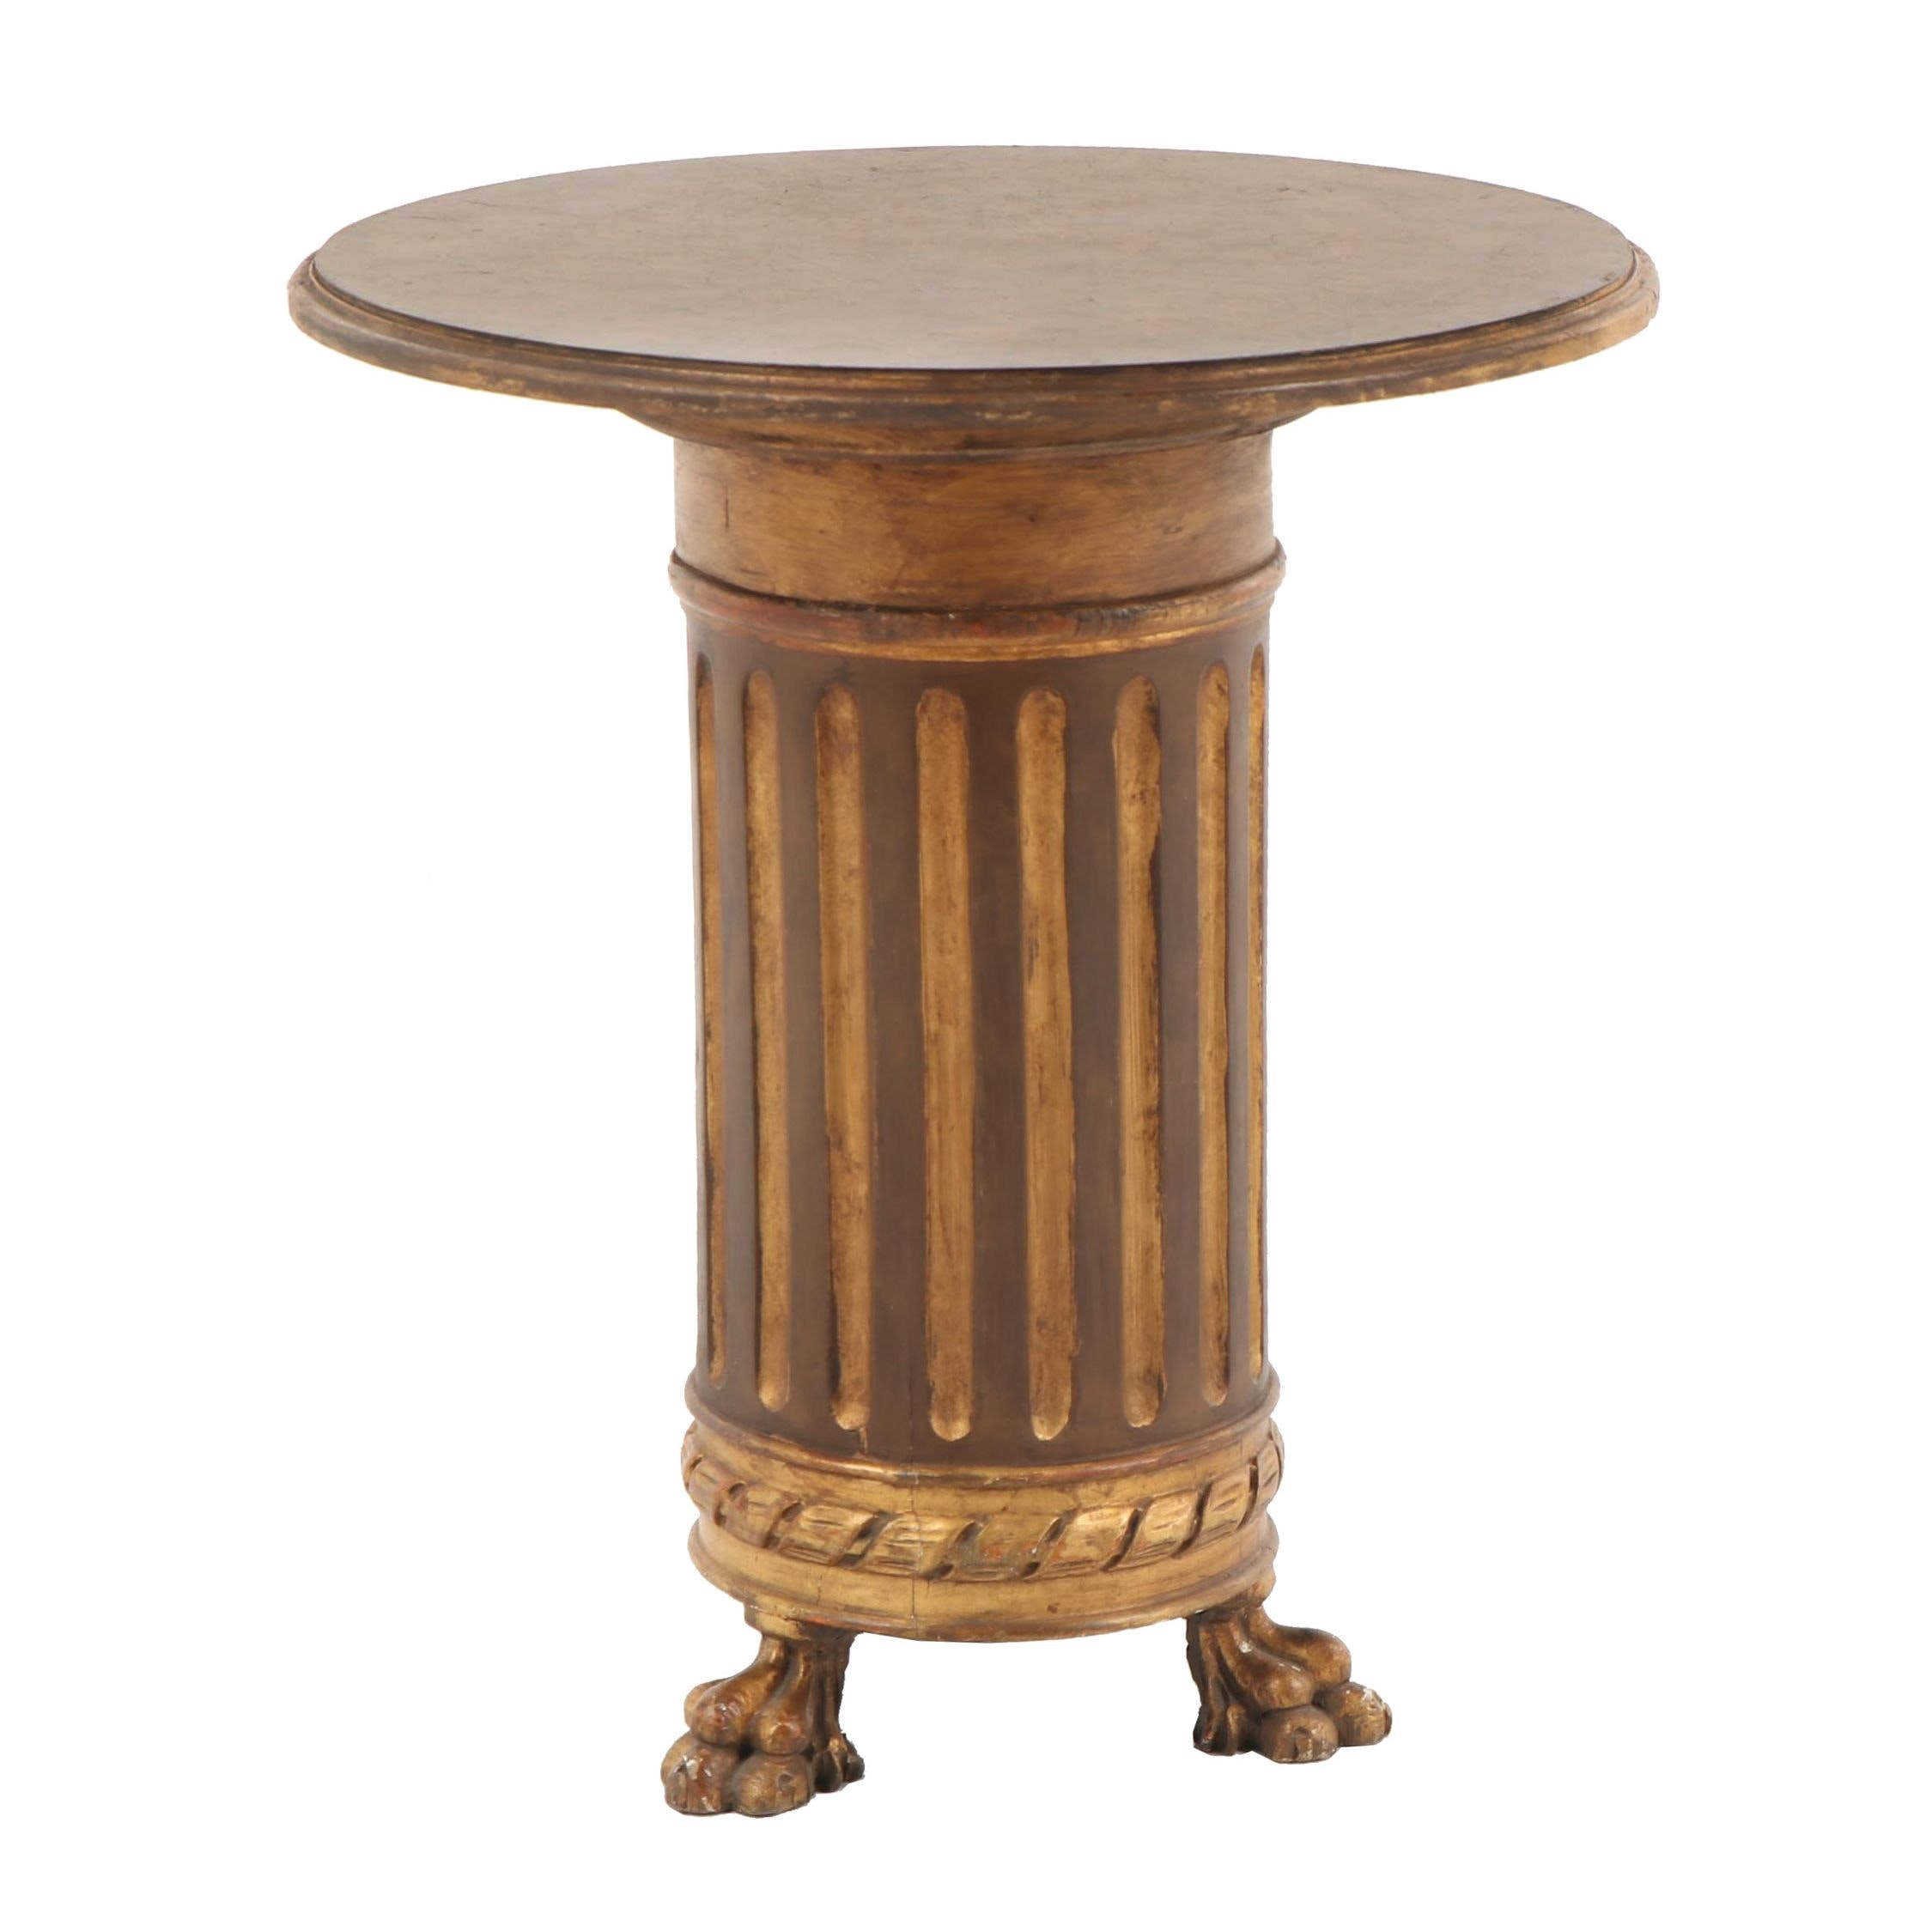 Neoclassical Style Occasional Table, Mid 20th Century